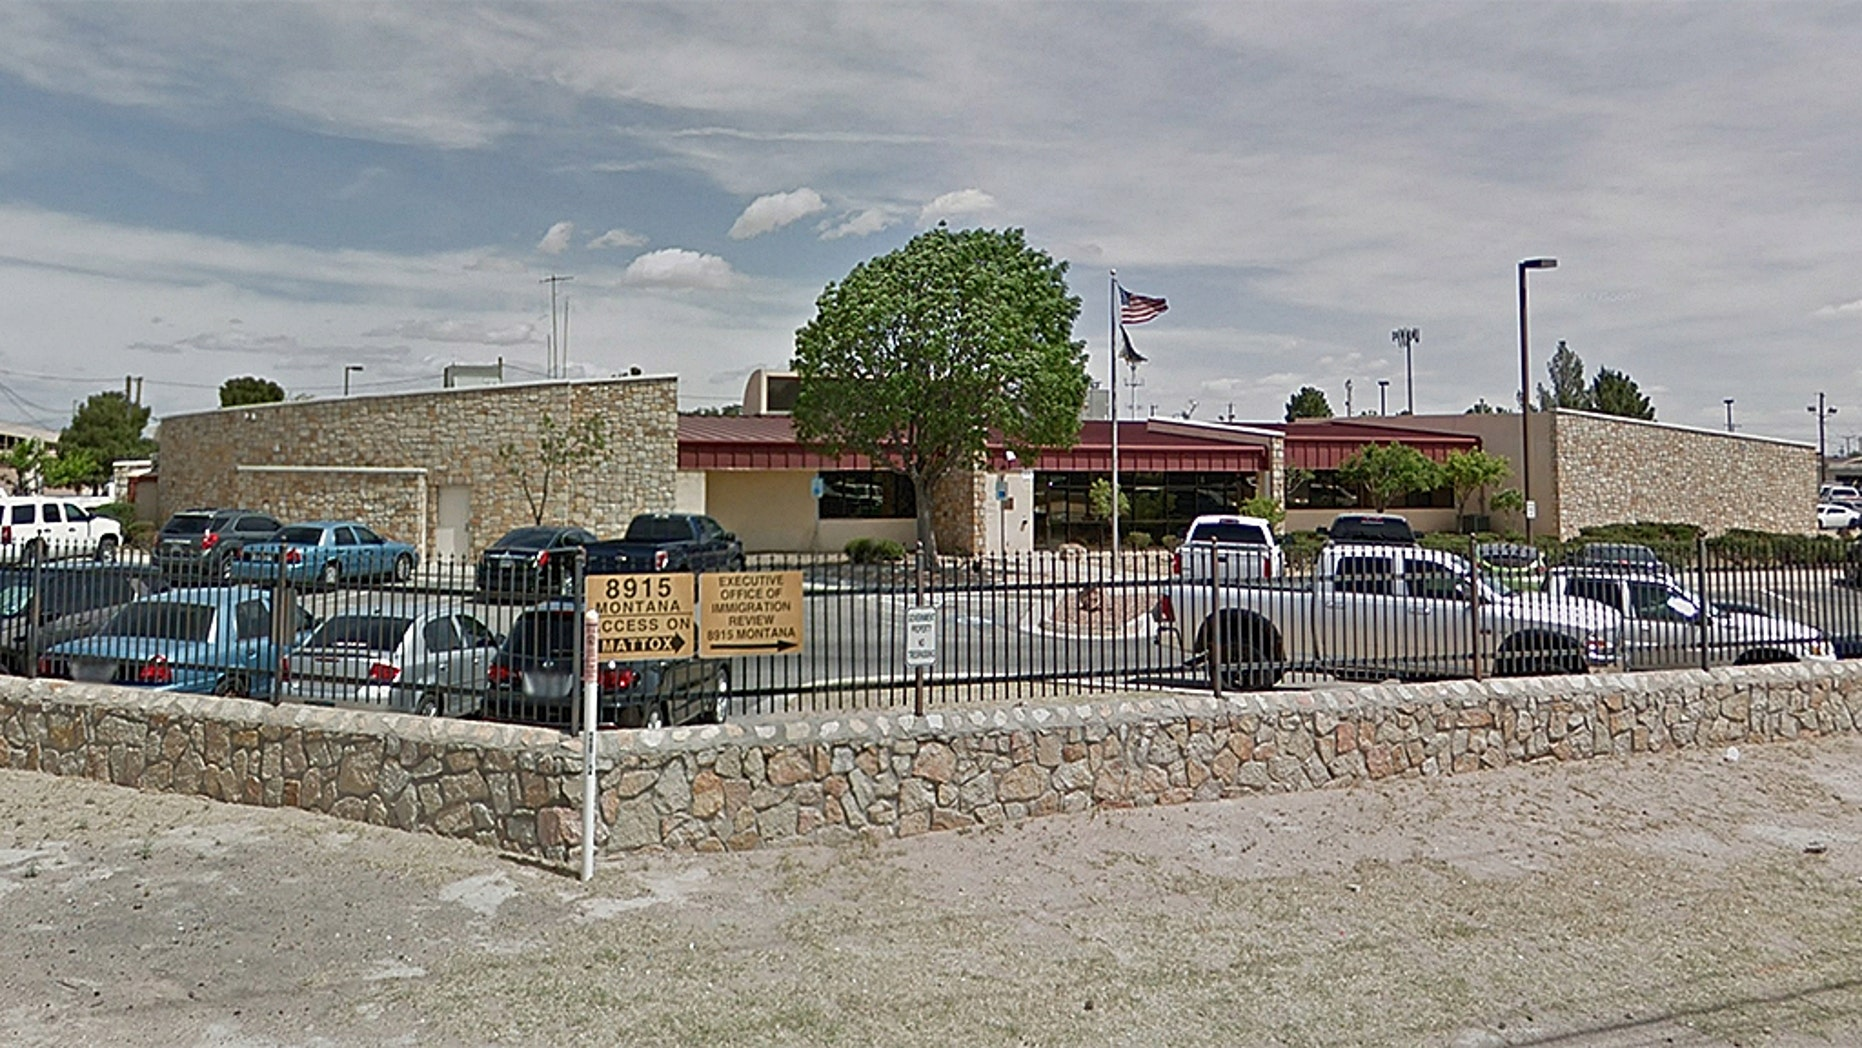 Two Indian men who were force-fed while on a hunger strike at the El Paso Processing Center in Texas have been deported